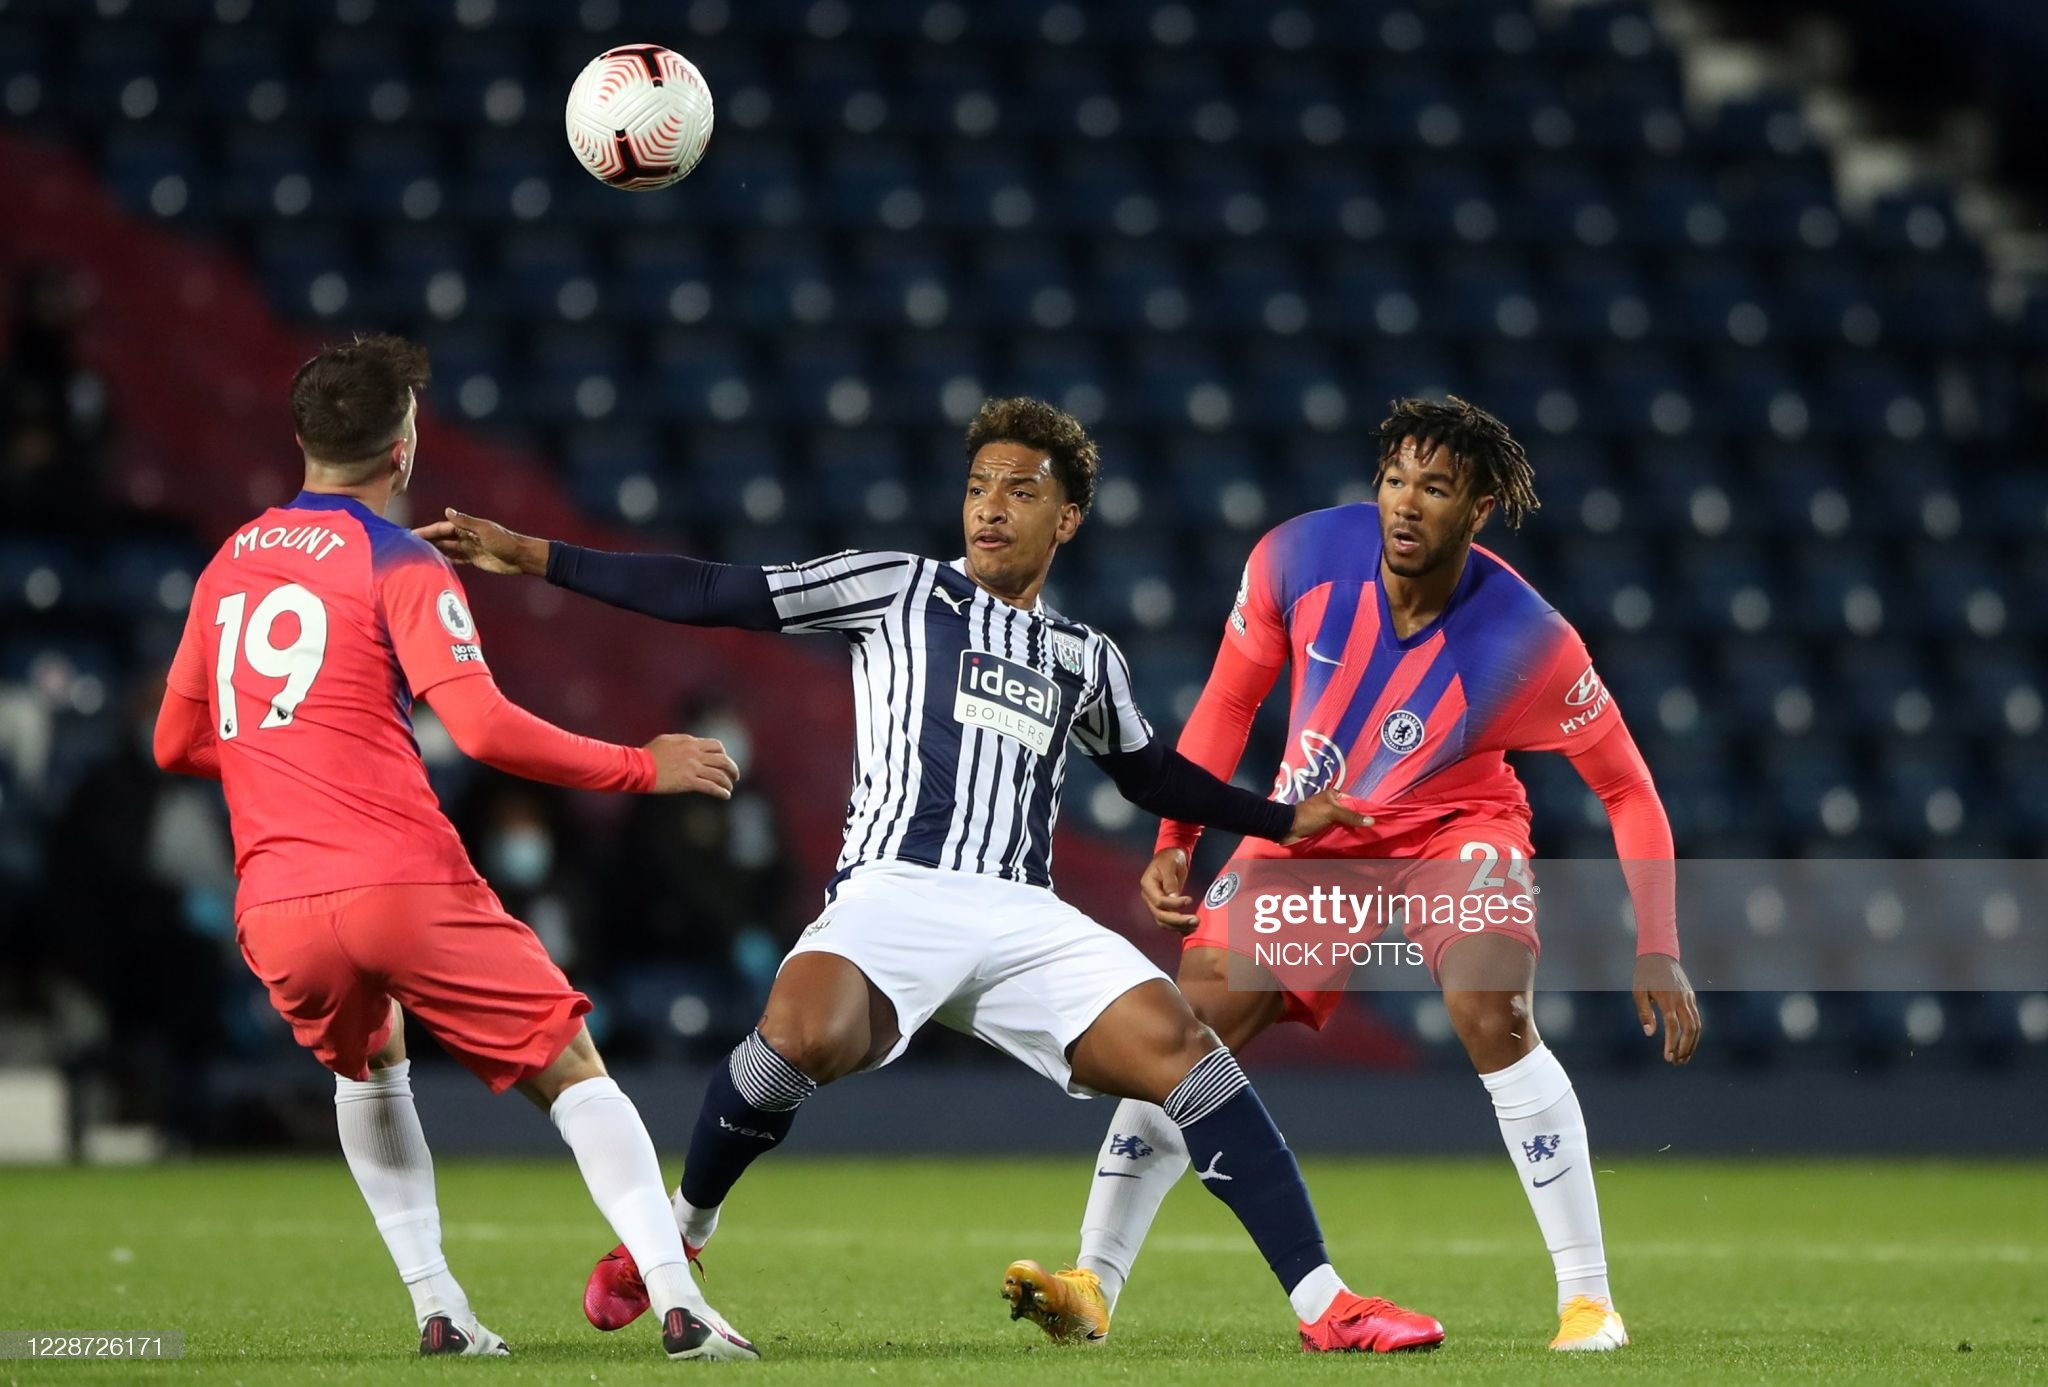 Chelsea vs West Brom Preview, prediction and odds